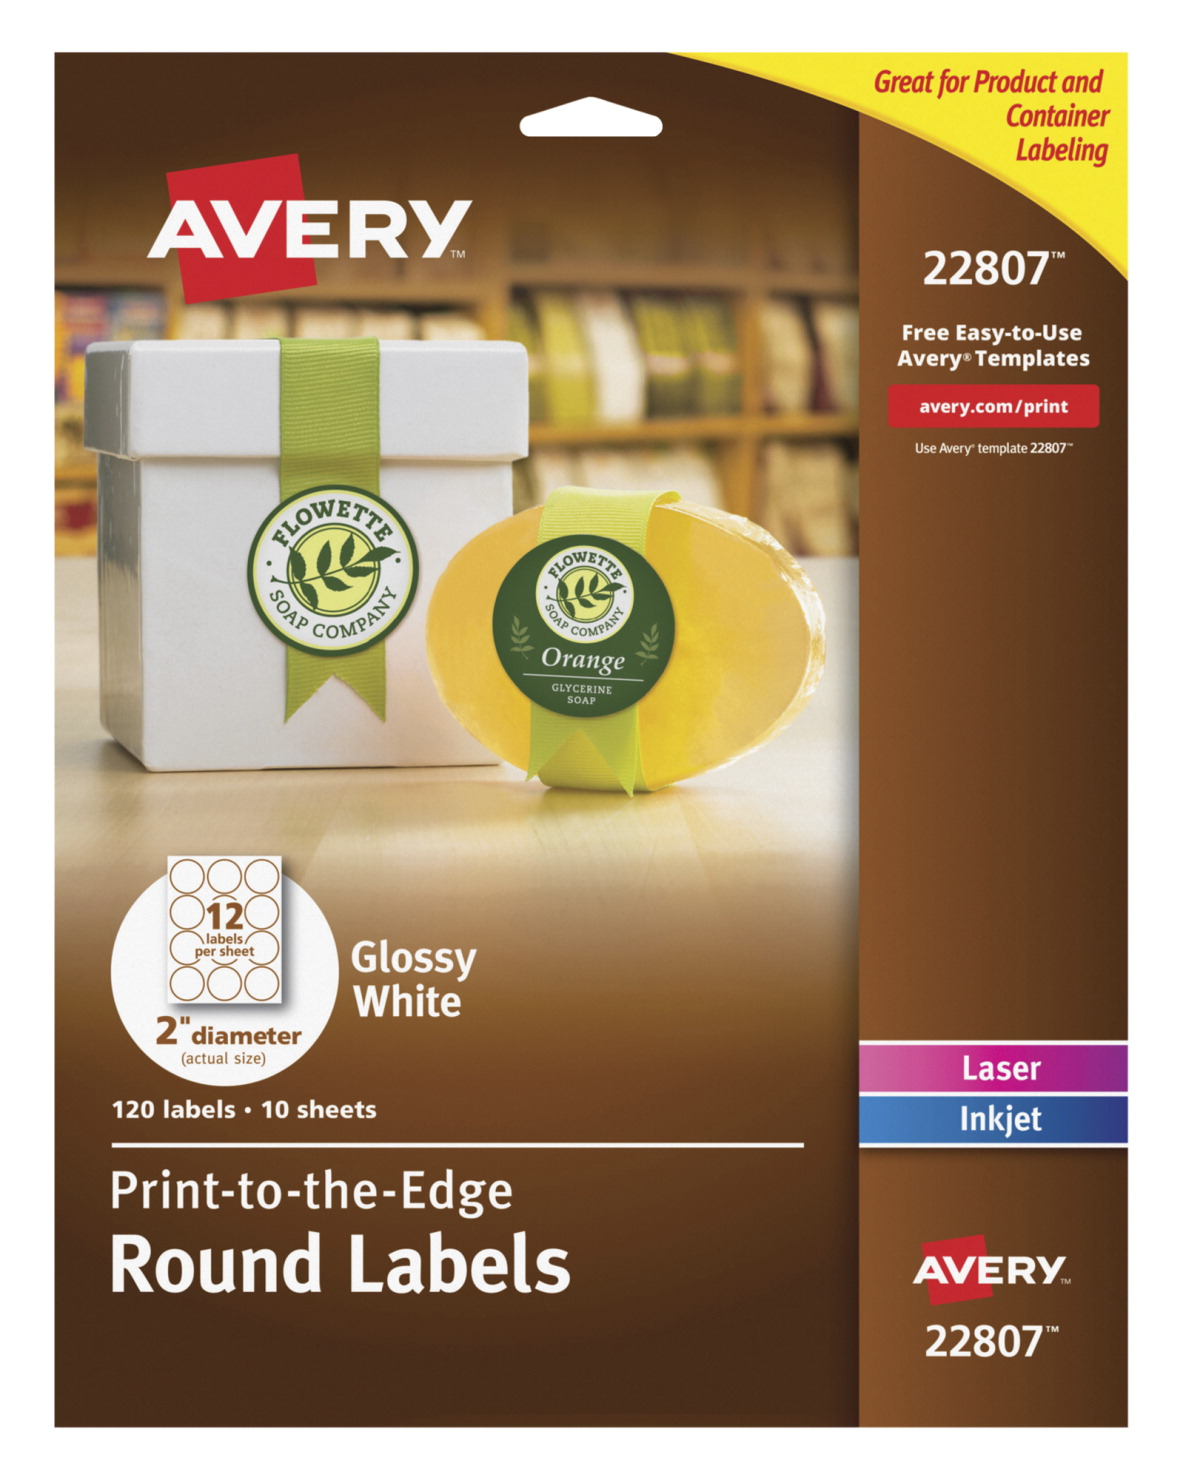 Avery Premium Easy Peel Oval Self-Adhesive Label for Laser and Inkjet  Printers, 2 in Dia, Glossy White, Pack of 120